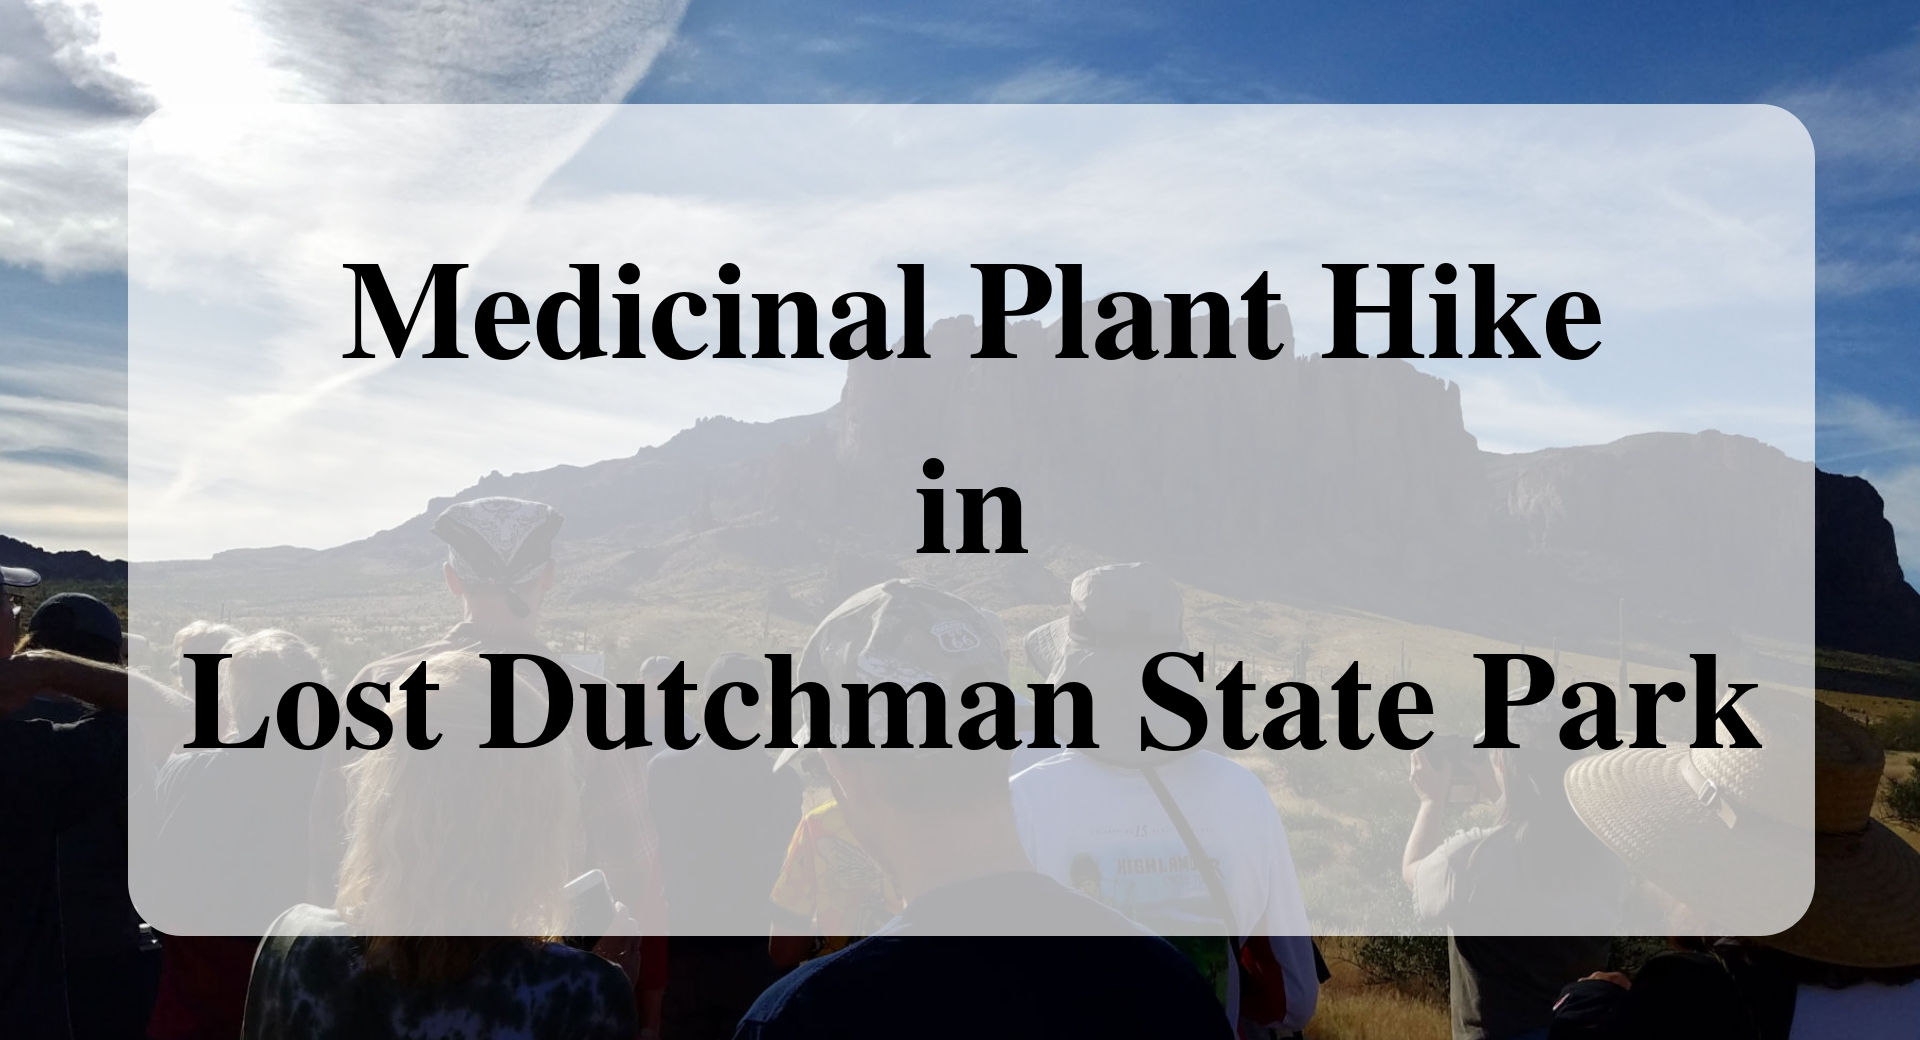 Medicinal Plant Hike in Lost Dutchman State Park